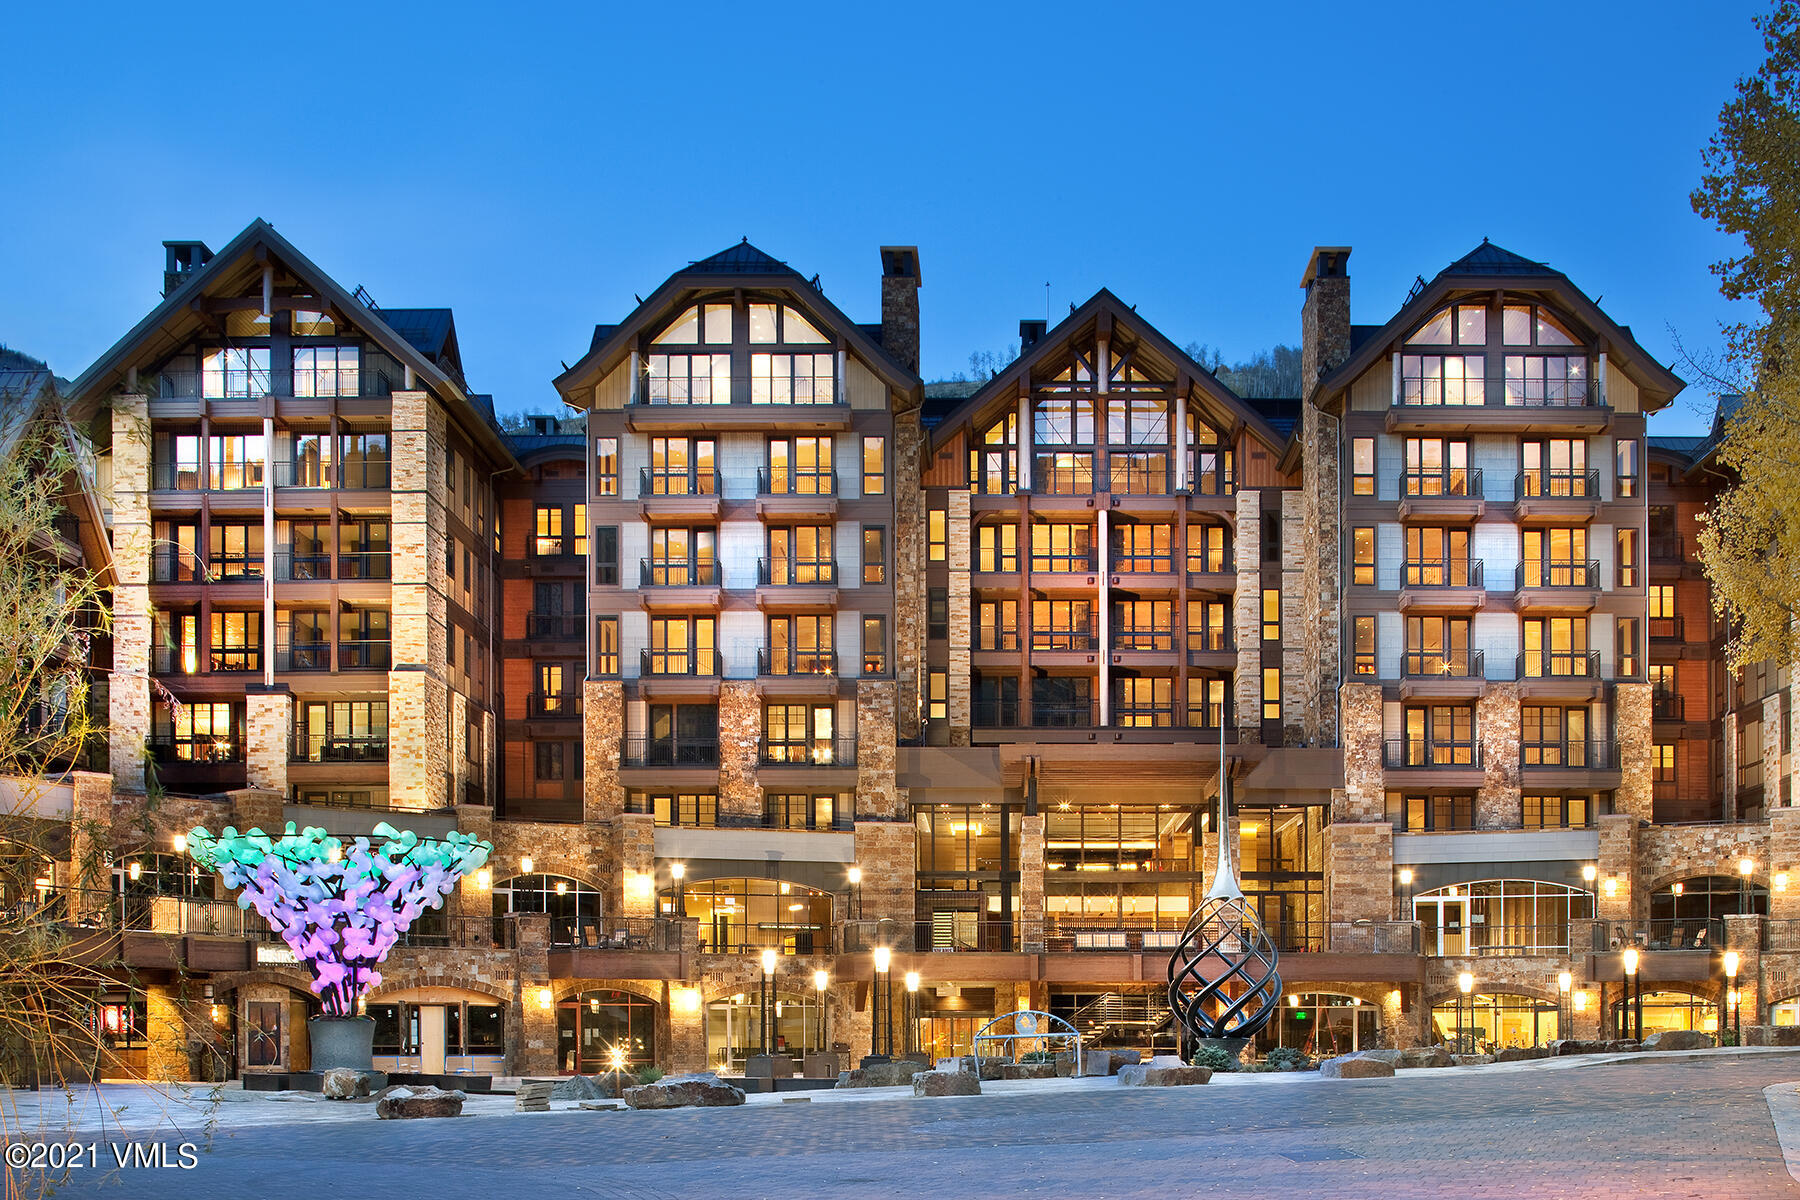 Spacious 3 Bedroom + Den Residence the heart of Vail Village. Den space can function as a 4th sleeping area or media room.  On-site amenities including 24hr concierge service, valet parking, indoor swimming pool & hot tub, fitness center and world-class, Matsuhisa dining. Walking distance to everything lifts, shops and restaurants, the Best of Vail Village!